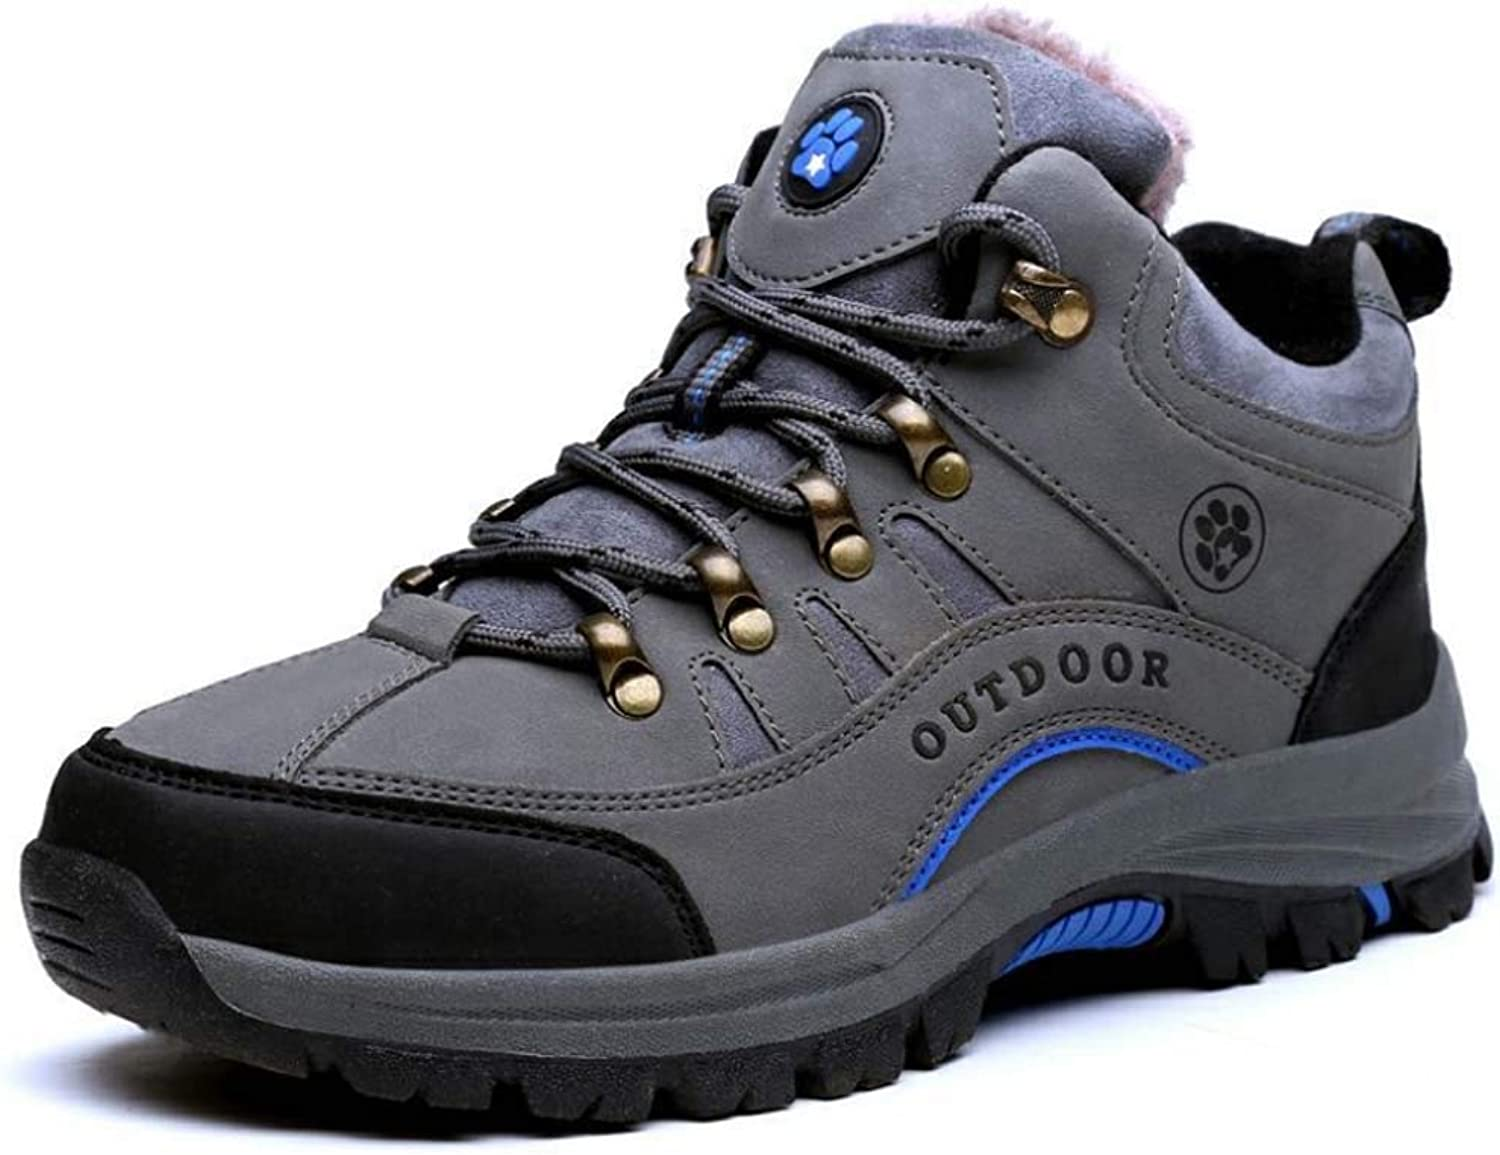 Winter Boots Warm Padded Winter shoes Outdoor Snow Boots Hiking shoes Non-Slip Work Boots Winter Boots Men Ladies